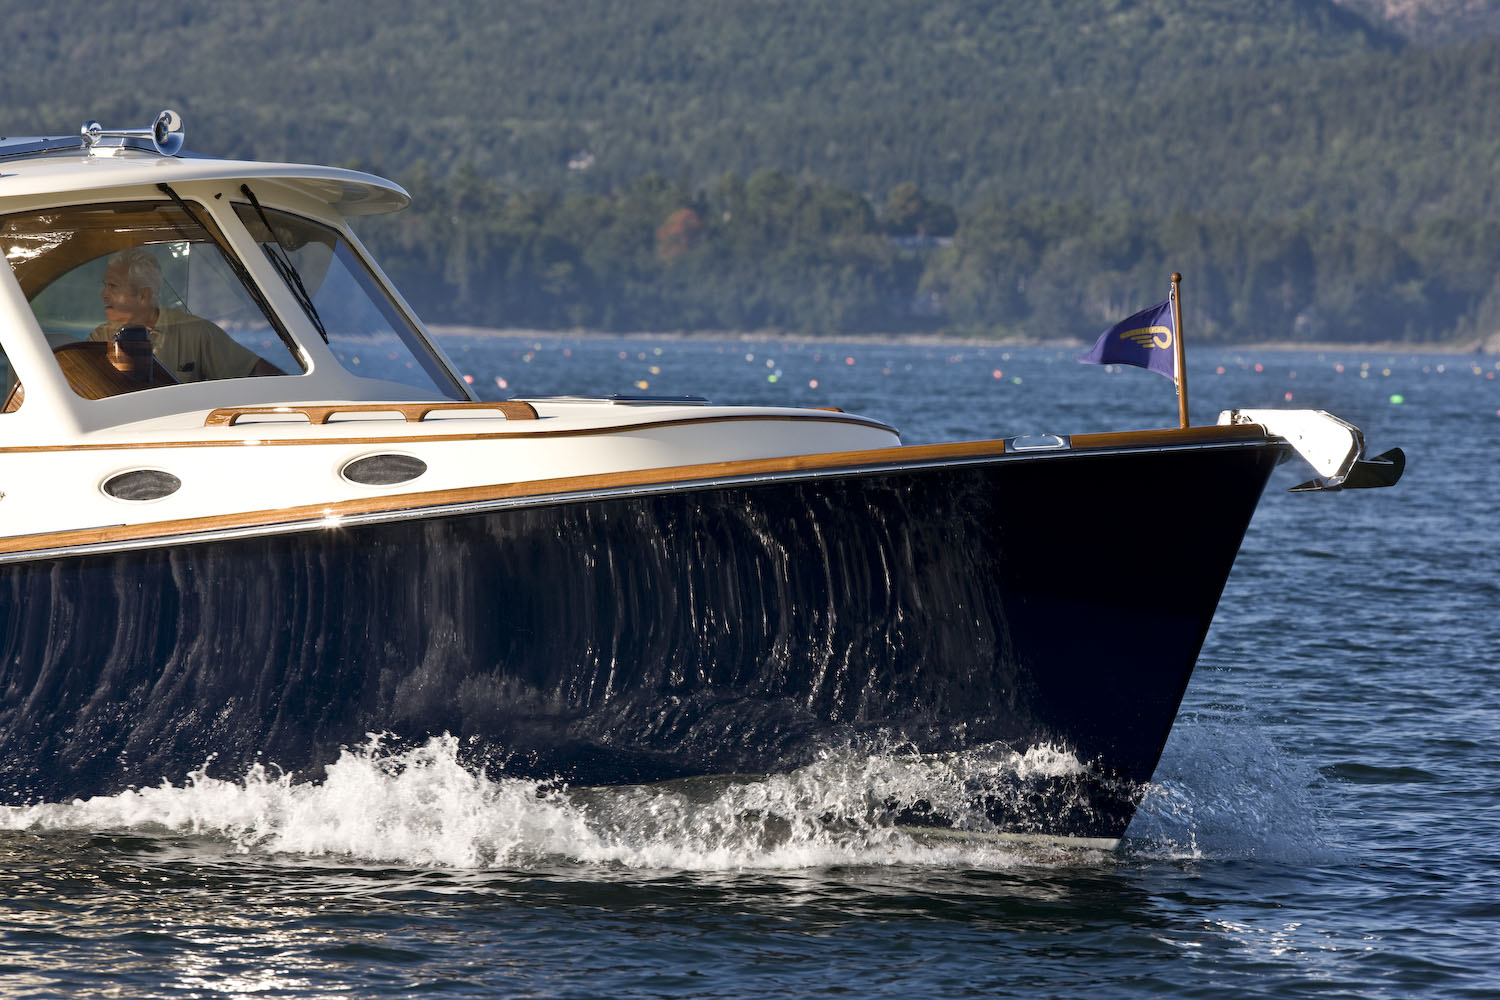 hinckley yachts luxury yachts with innovative technology